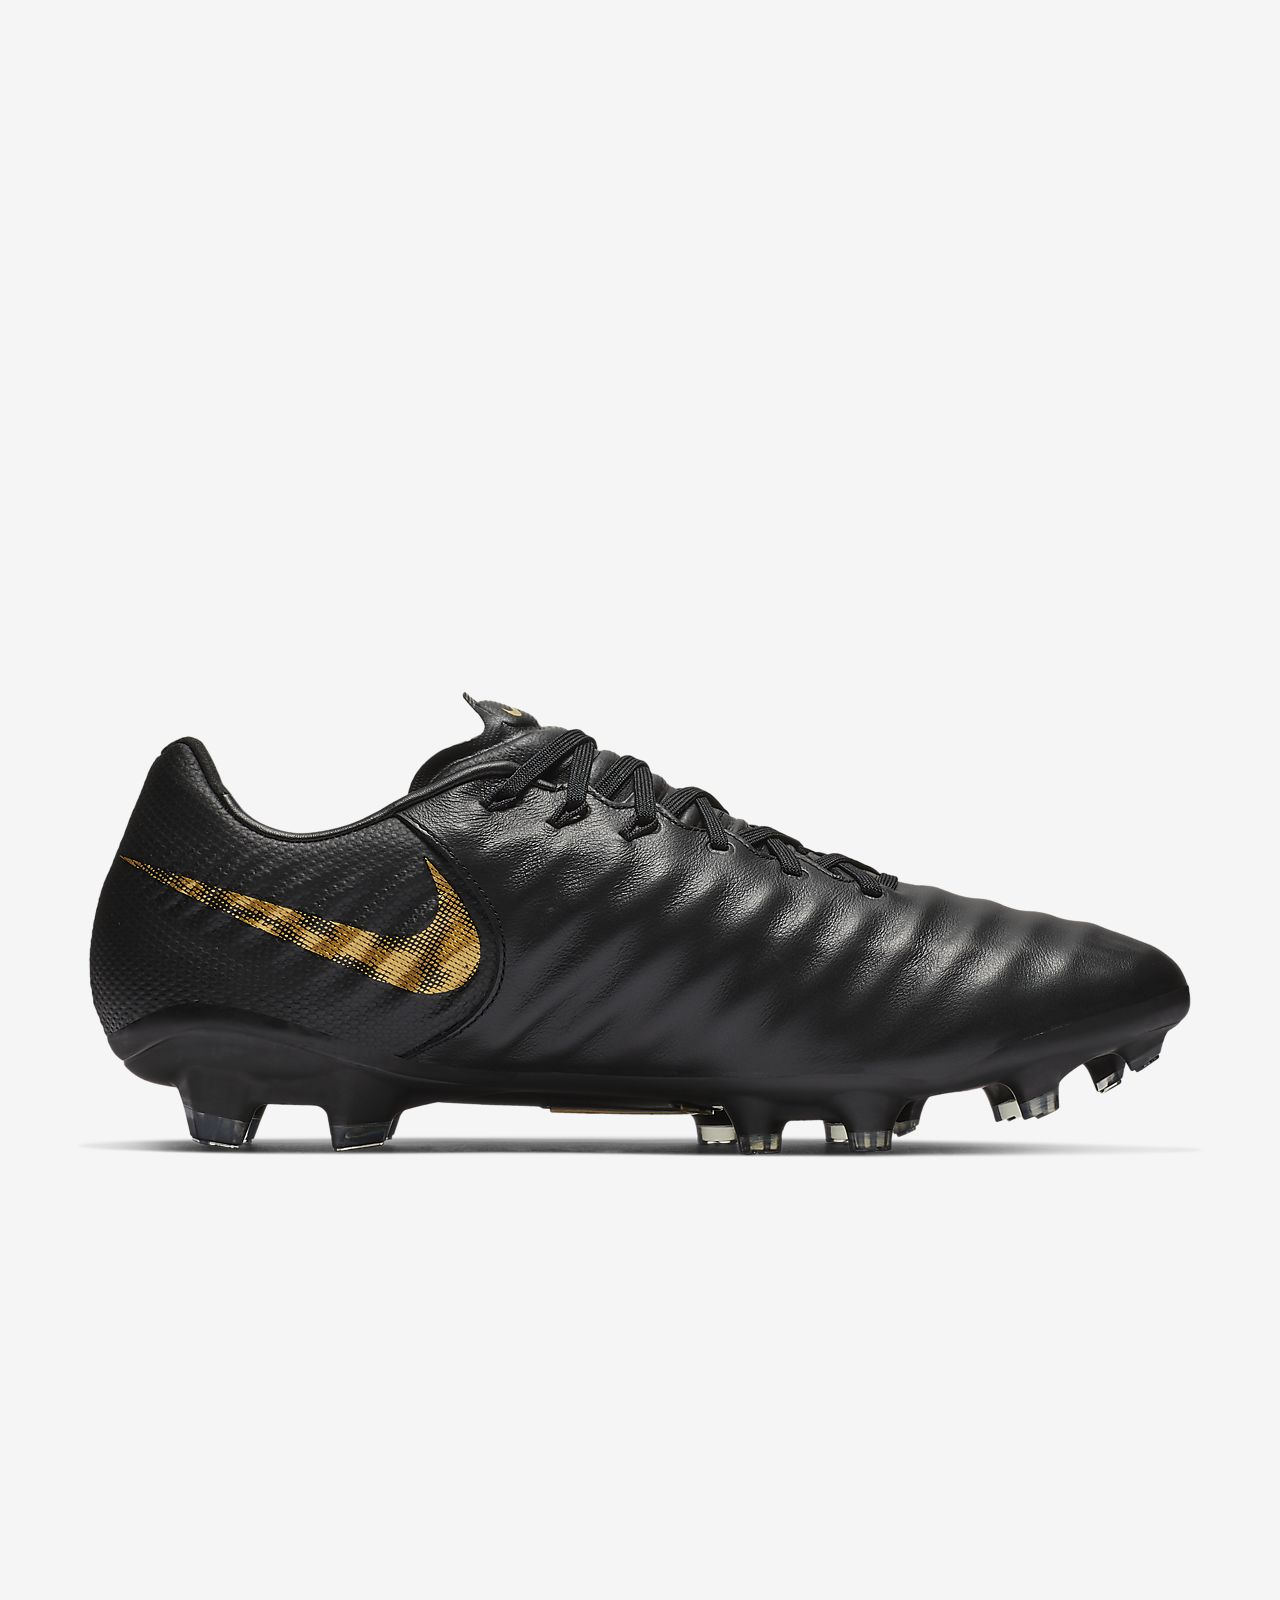 hot sale online 8e432 0bd5f ... Nike Tiempo Legend 7 Pro CA FG Firm-Ground Soccer Cleat